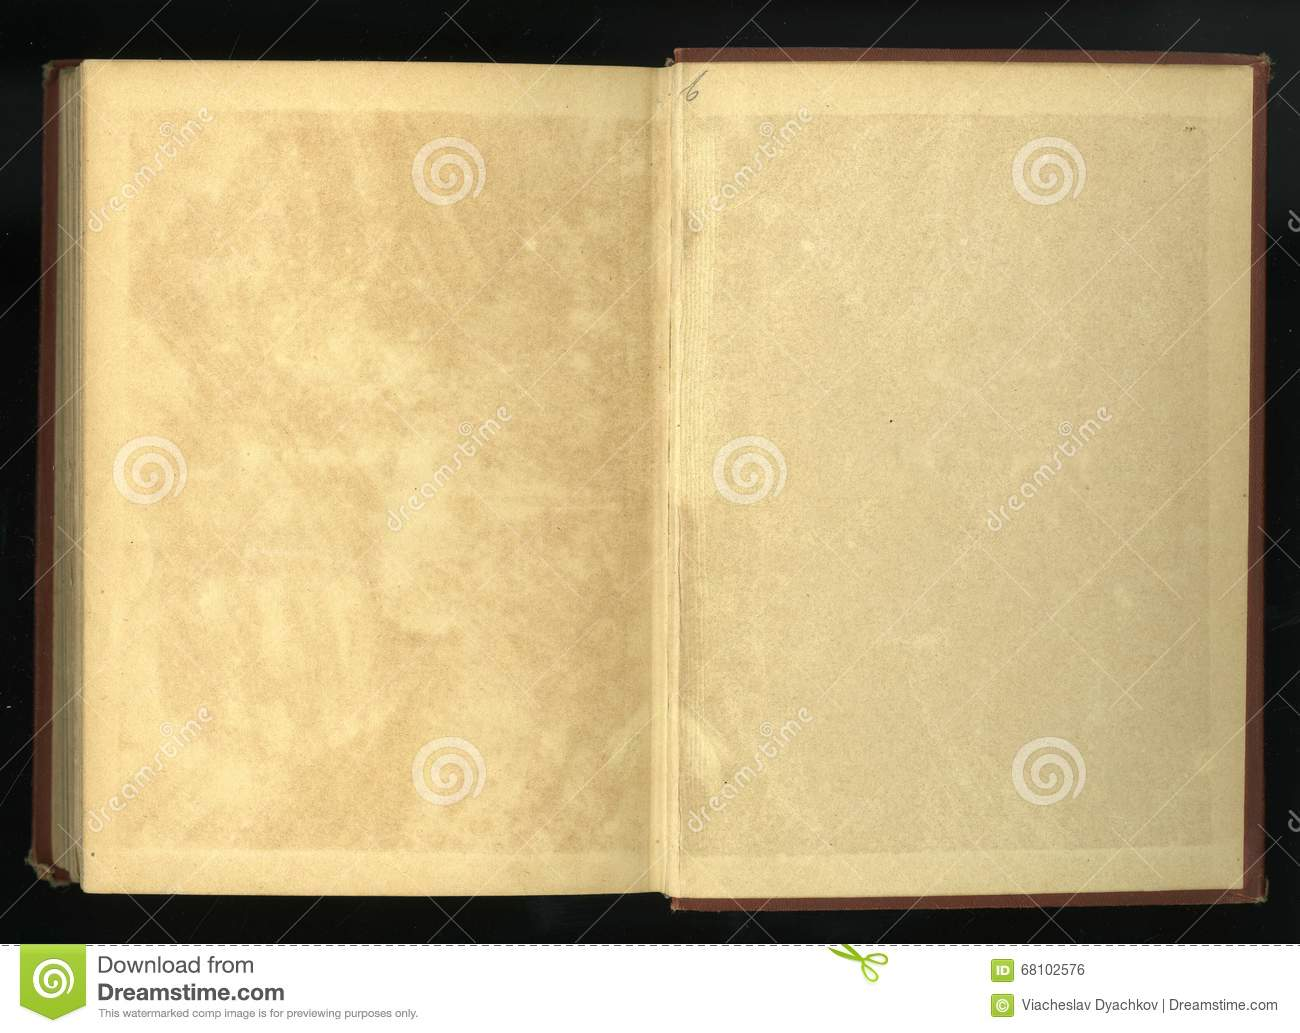 Download Retro Style. Frame Floral Ornament On The Pages Of Old Books. Stock Photo - Image of distressed, brown: 68102576